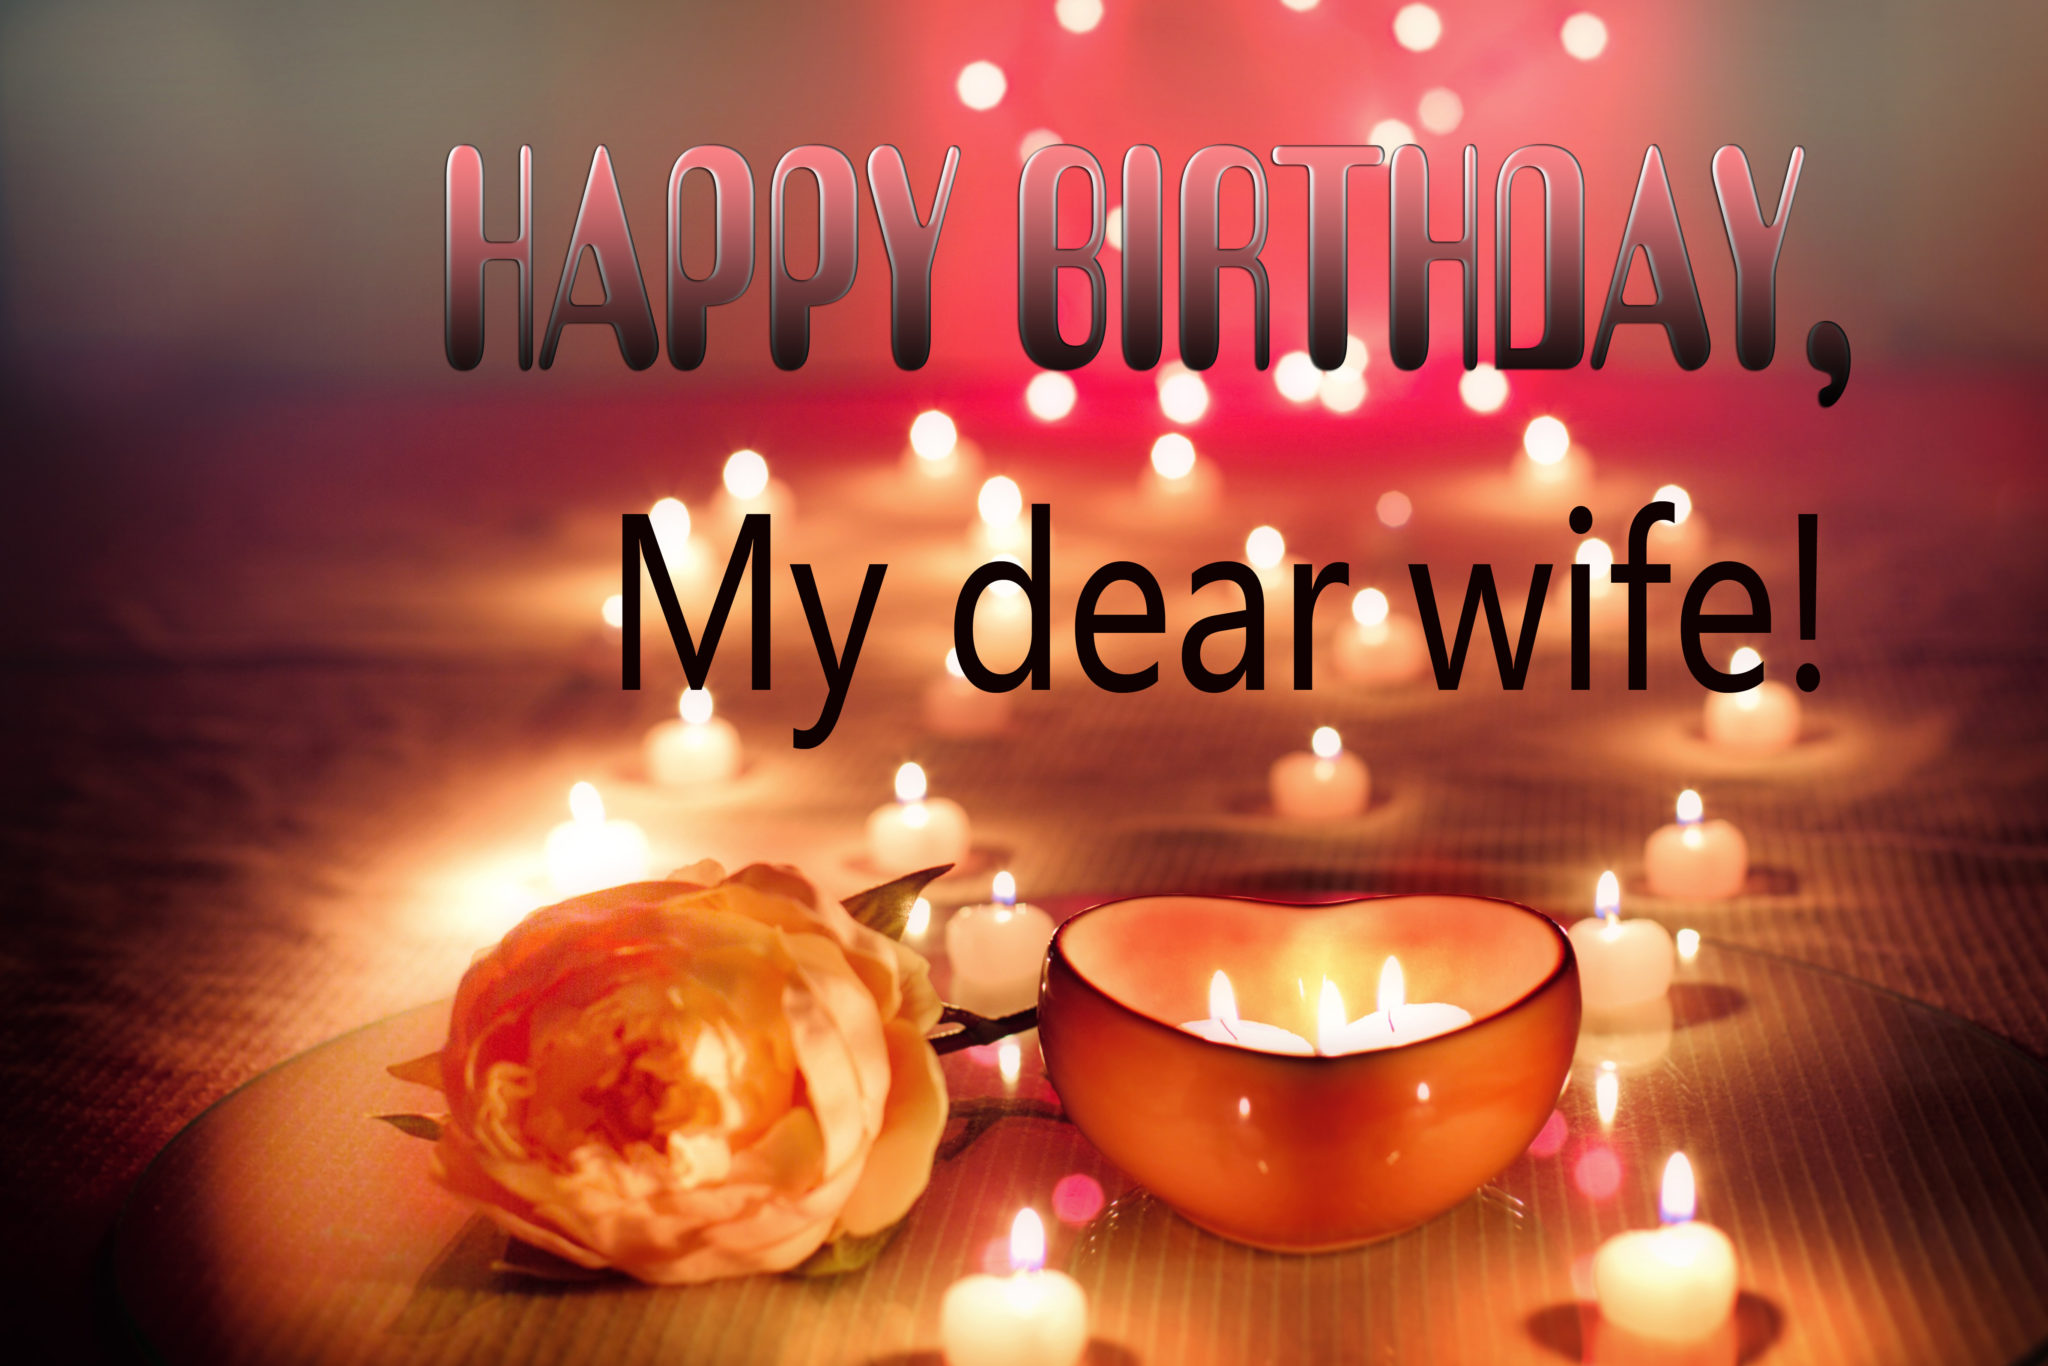 Birthday wishes for wife in hindi & english